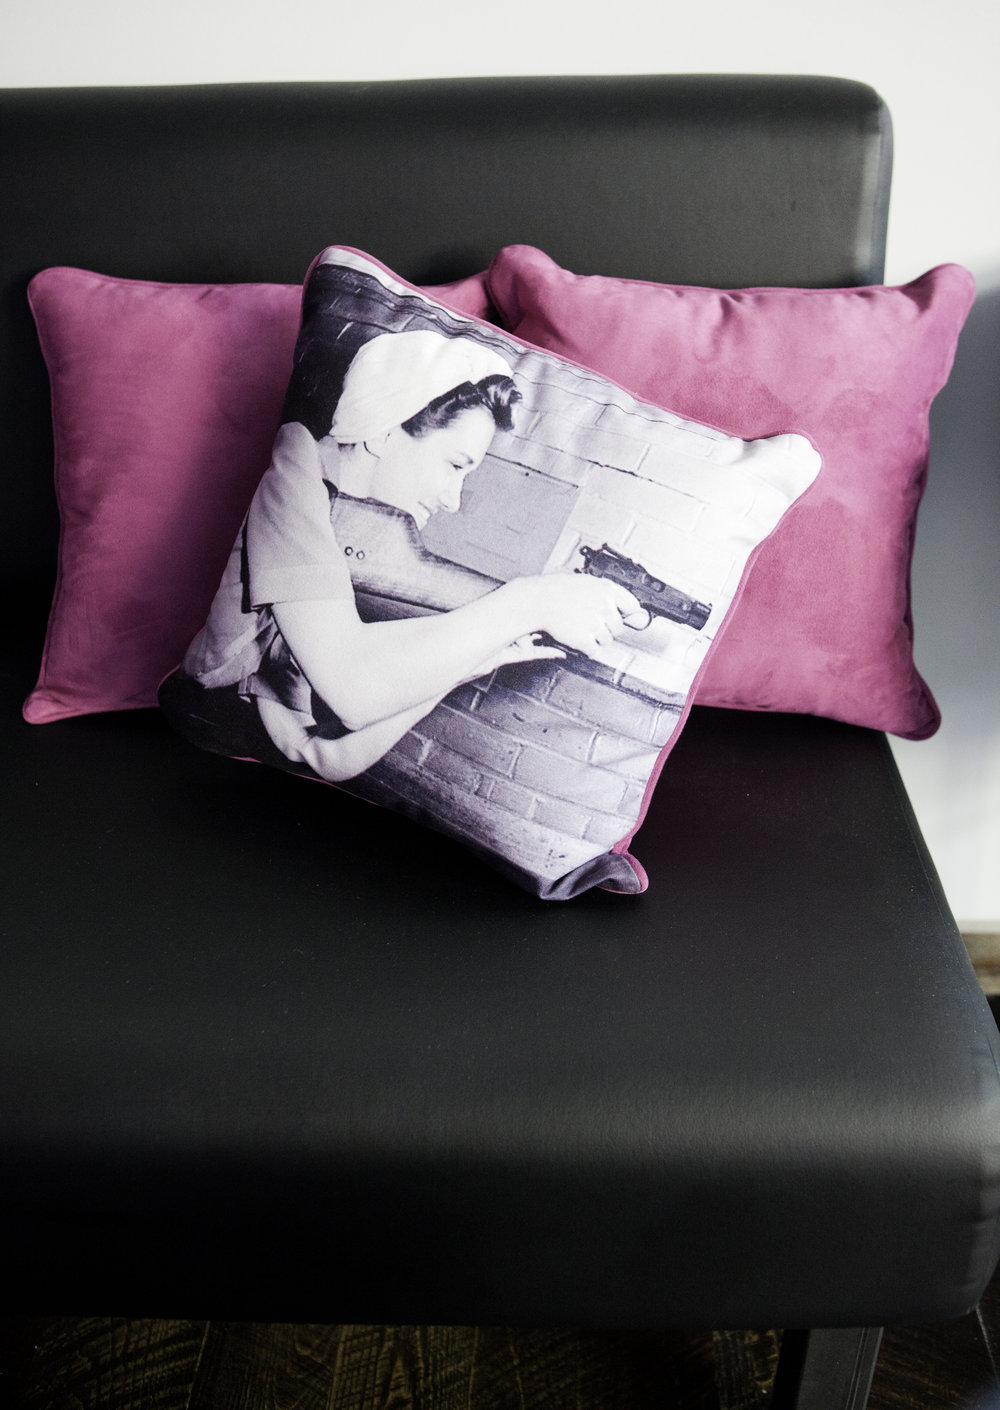 OriginLiberty-Pillows1.jpg